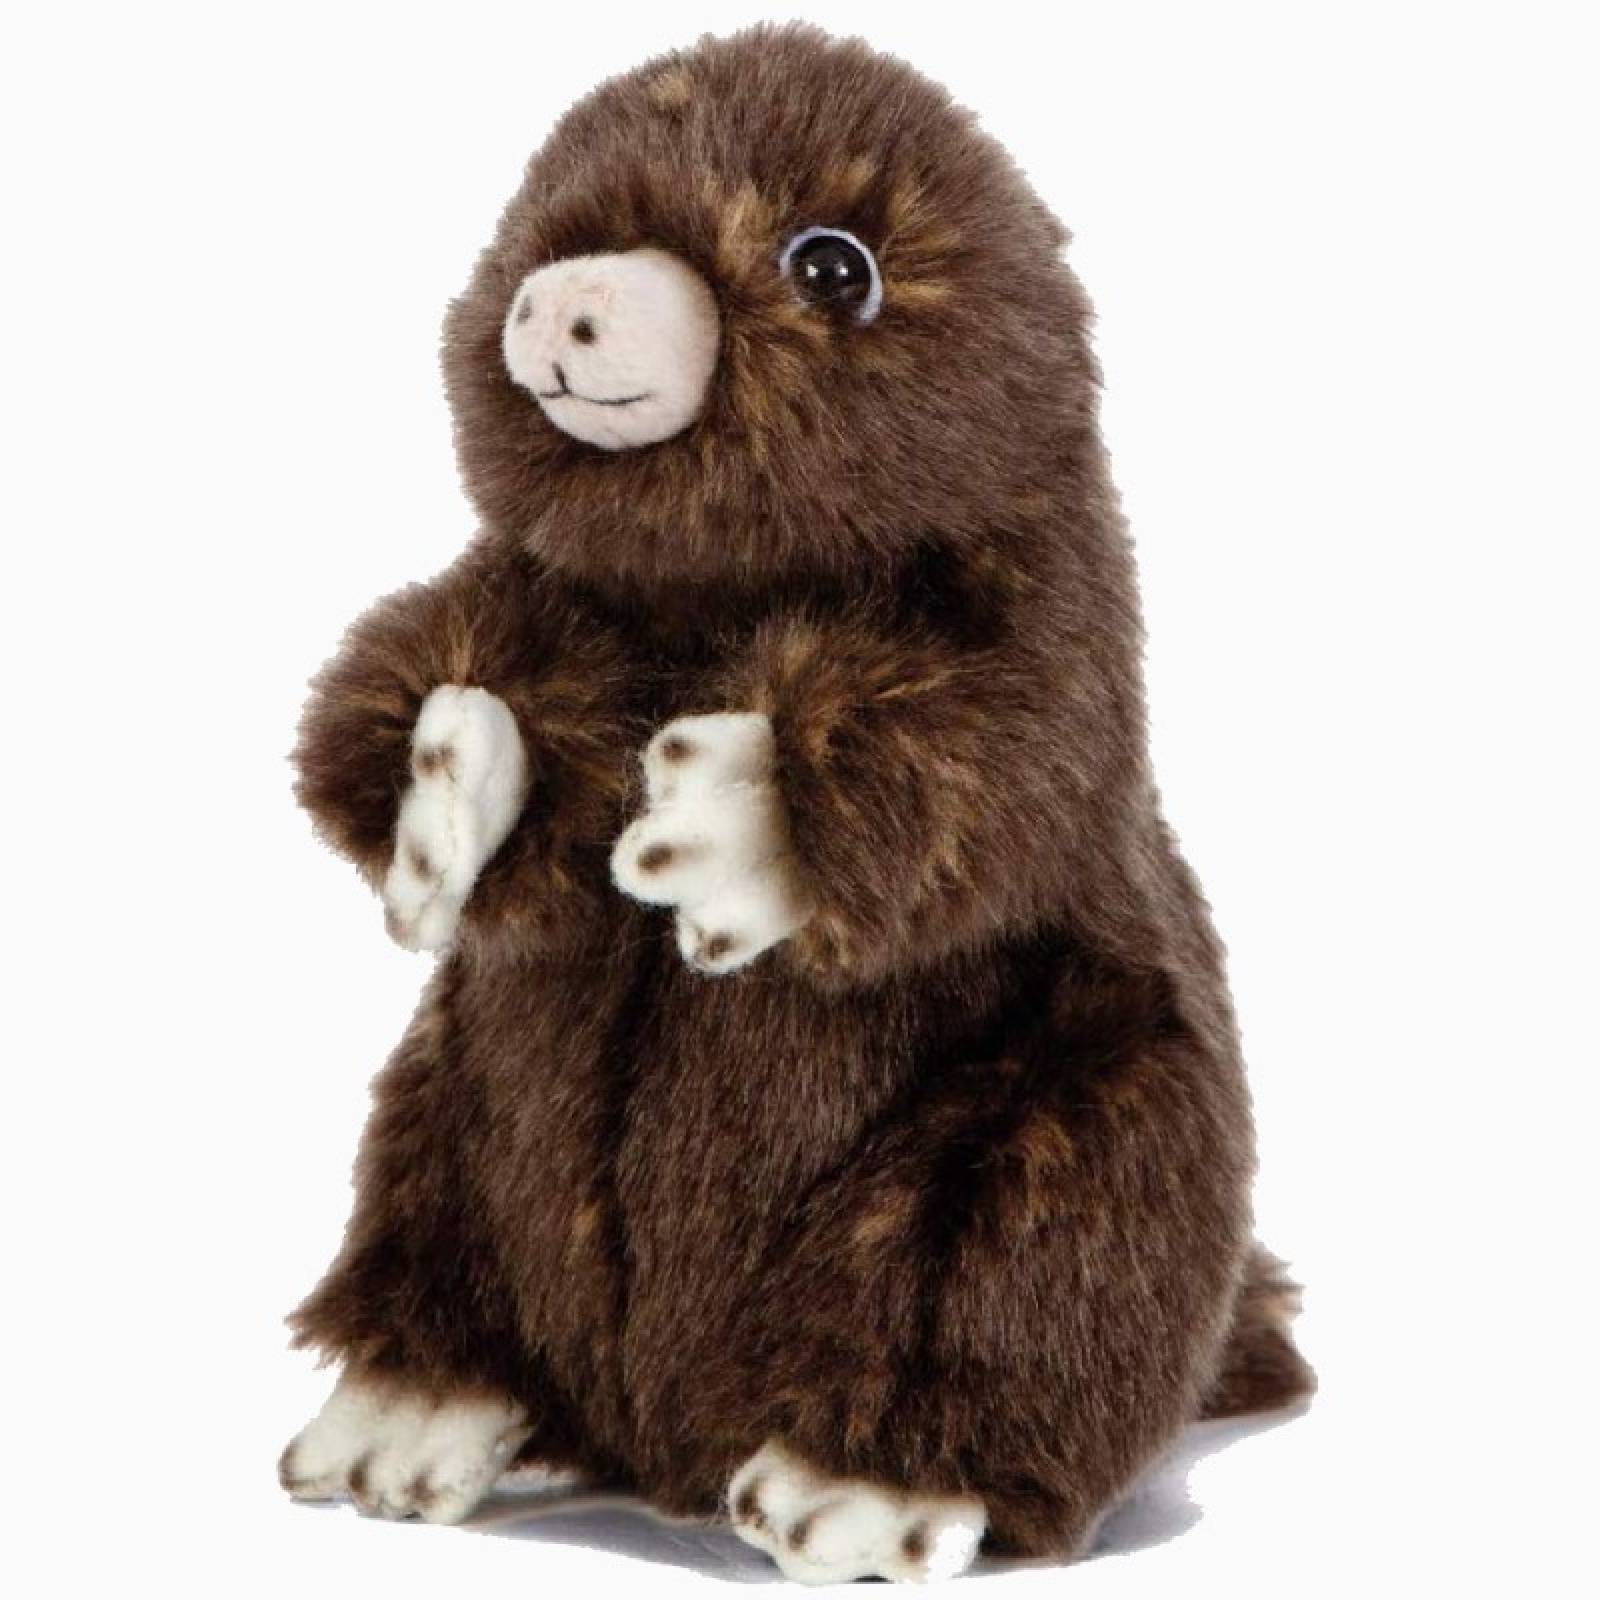 Small Sitting Mole Soft Toy 0+